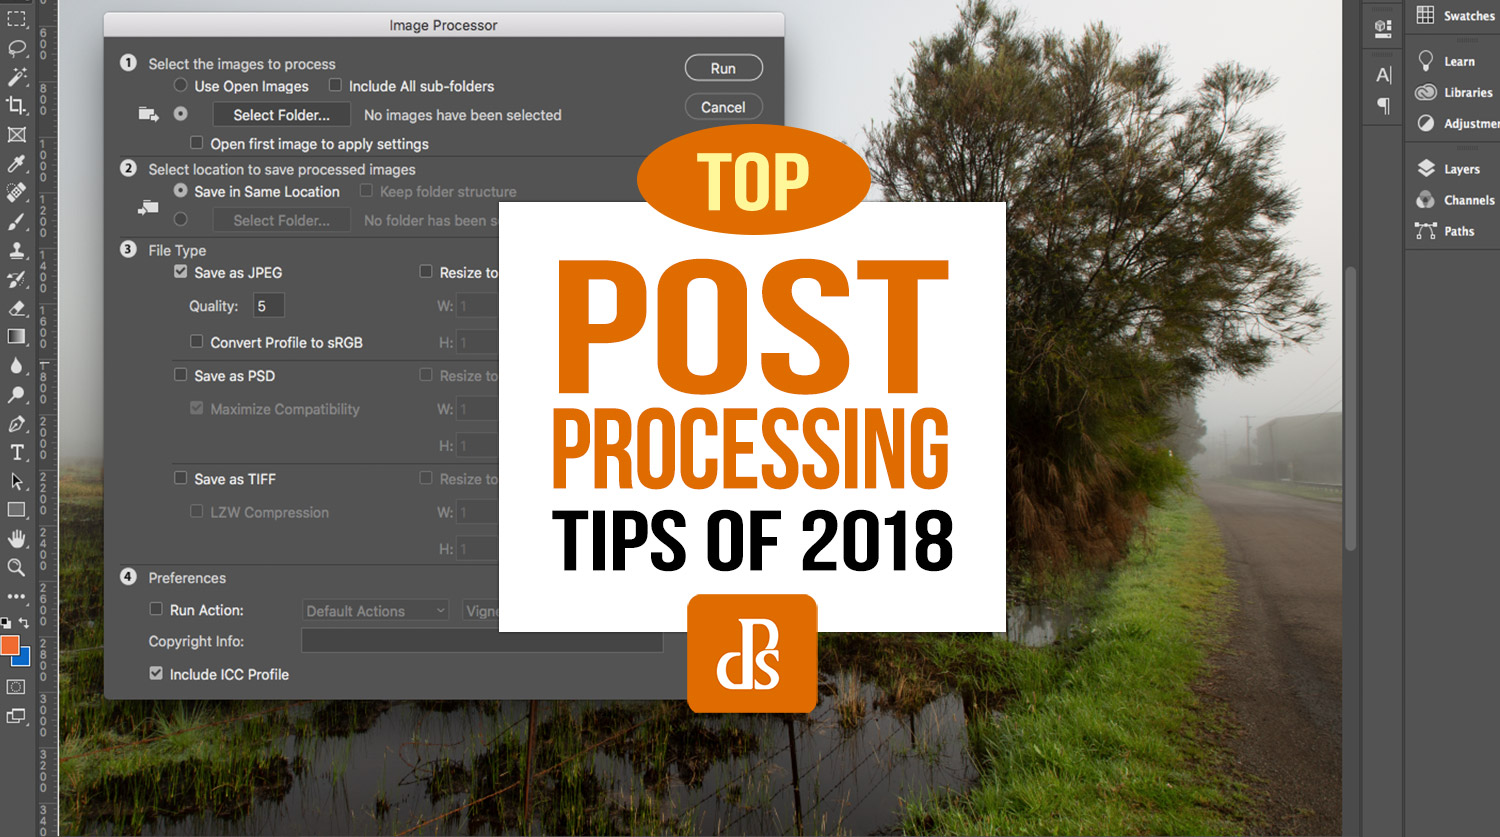 https://i1.wp.com/digital-photography-school.com/wp-content/uploads/2018/12/dps-top-pot-processing-photography-tips-2018.jpg?resize=1500%2C837&ssl=1